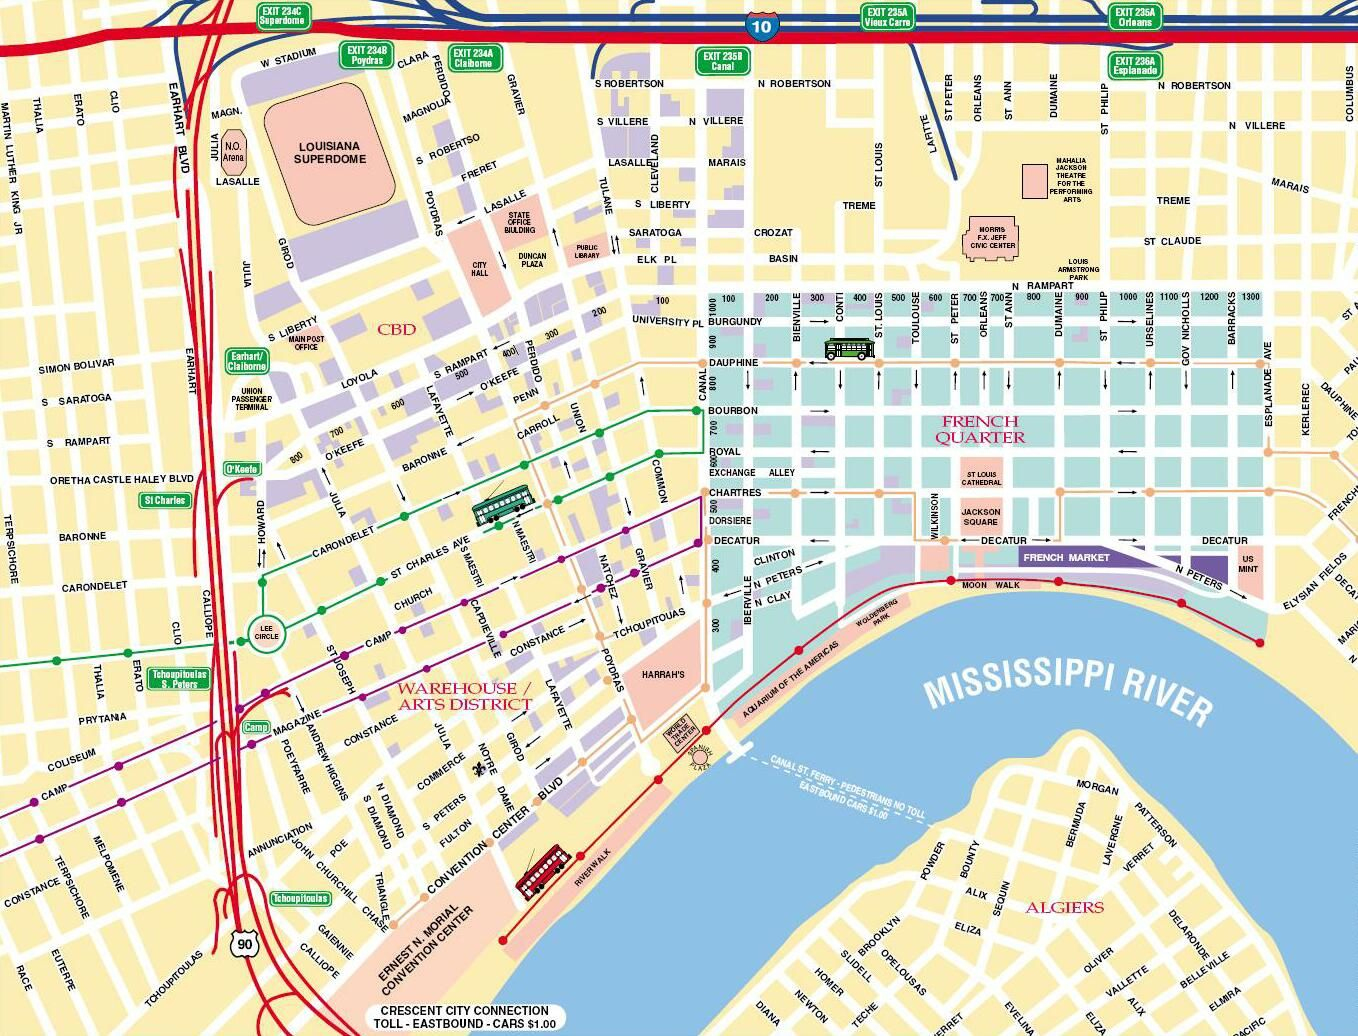 map of new orleans – Tourist Attractions Map In New Orleans